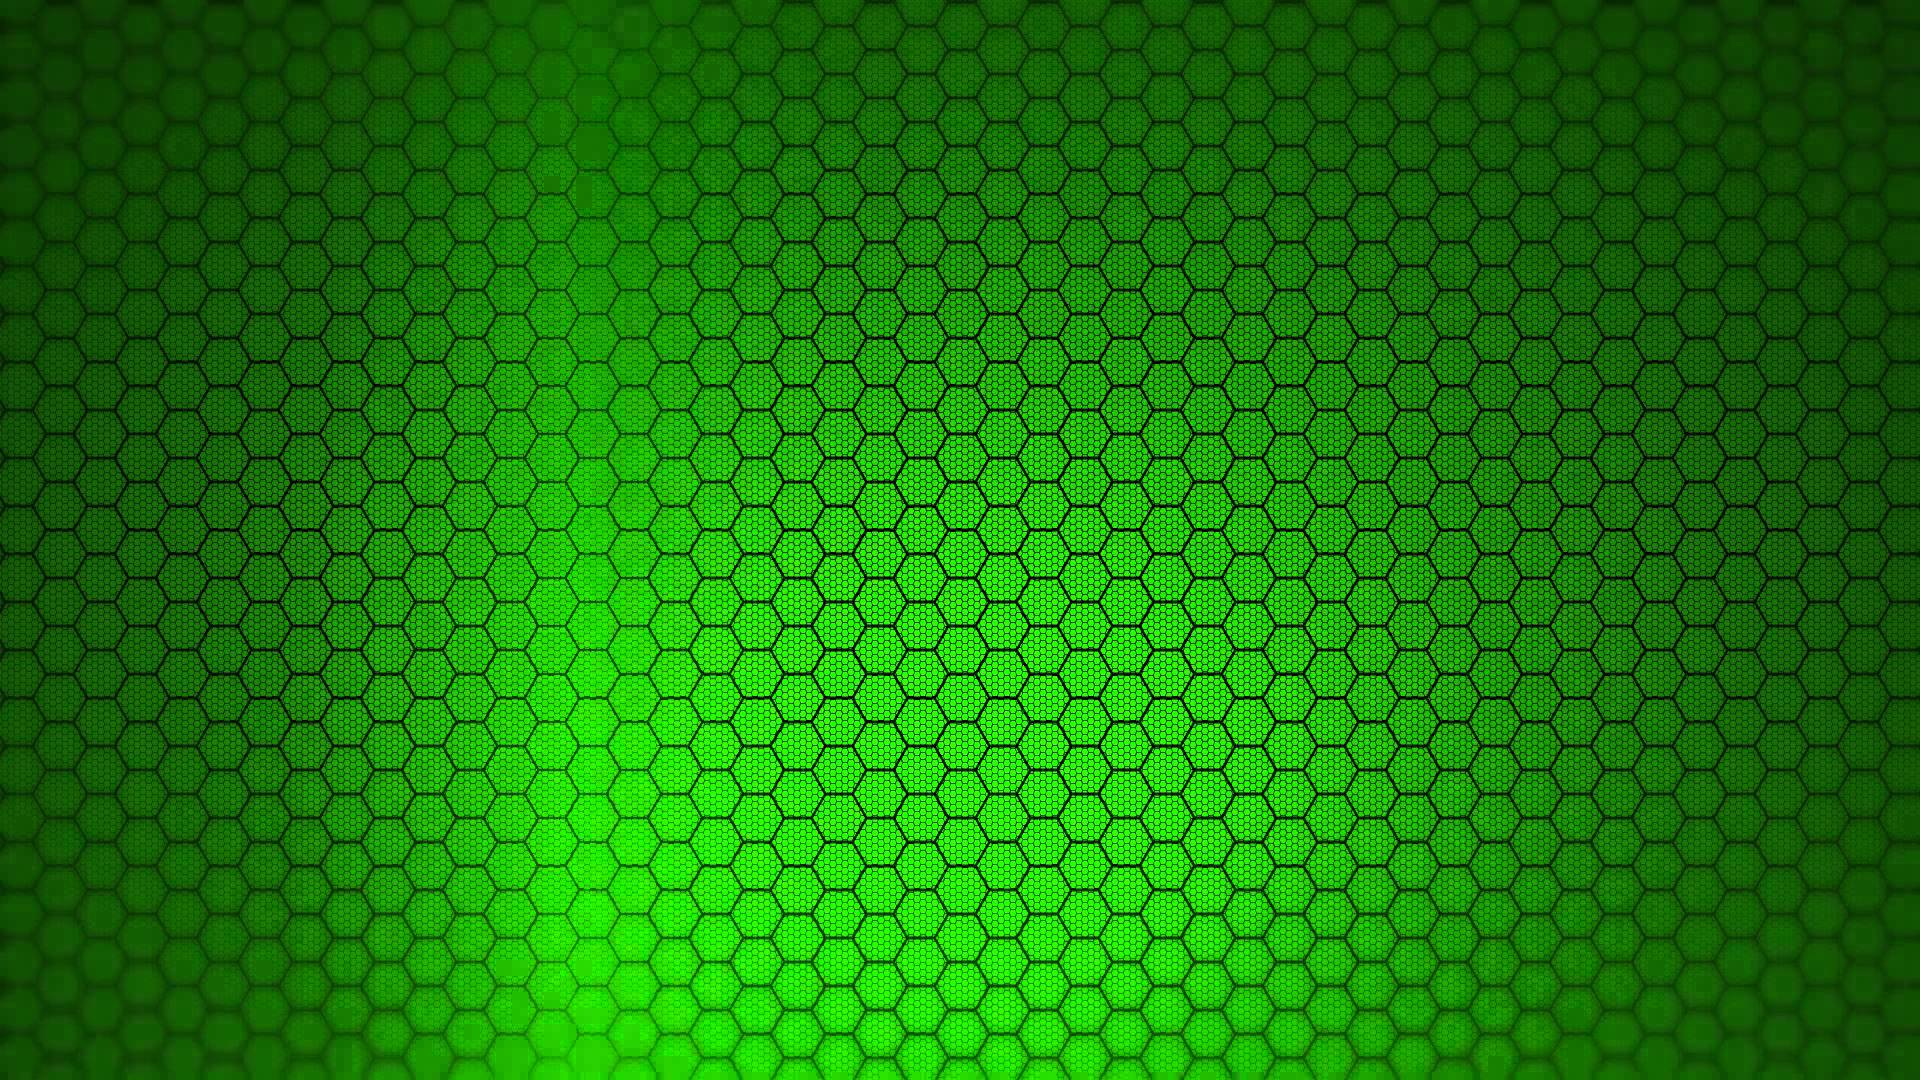 Green Paint Splatter Background Transparent